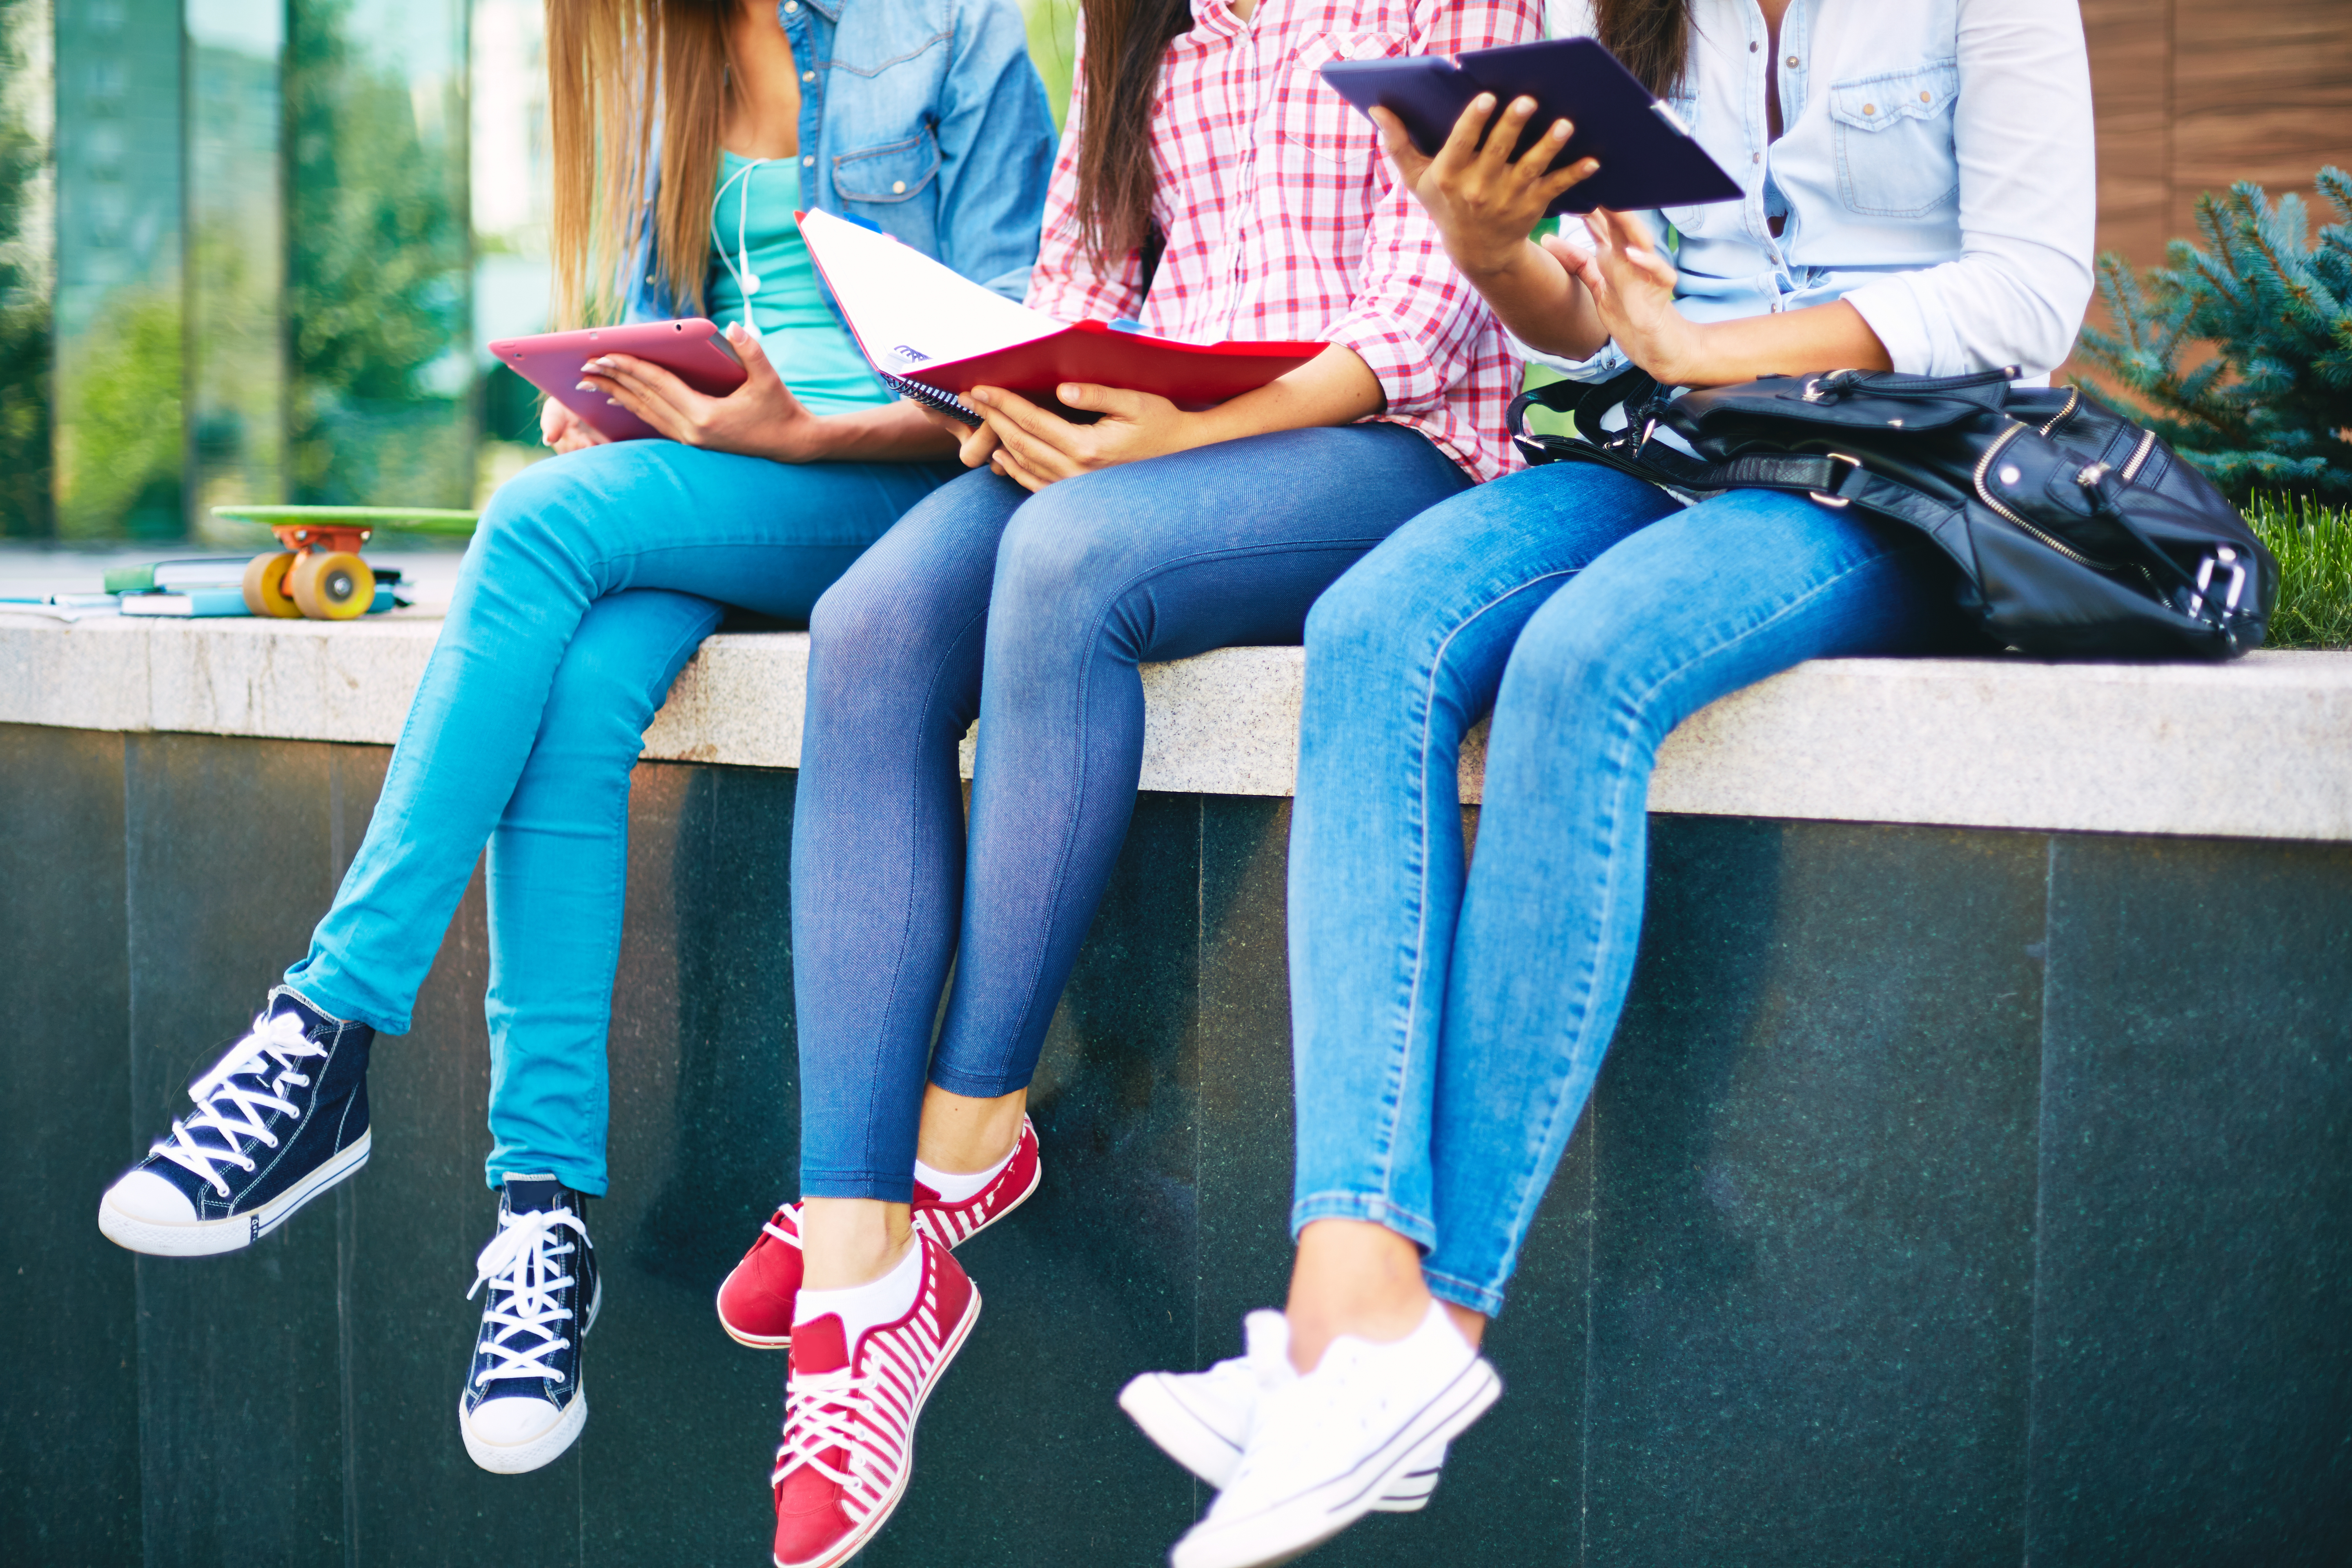 Study shows teen girls suffer PTSD differently than boys which makes total sense